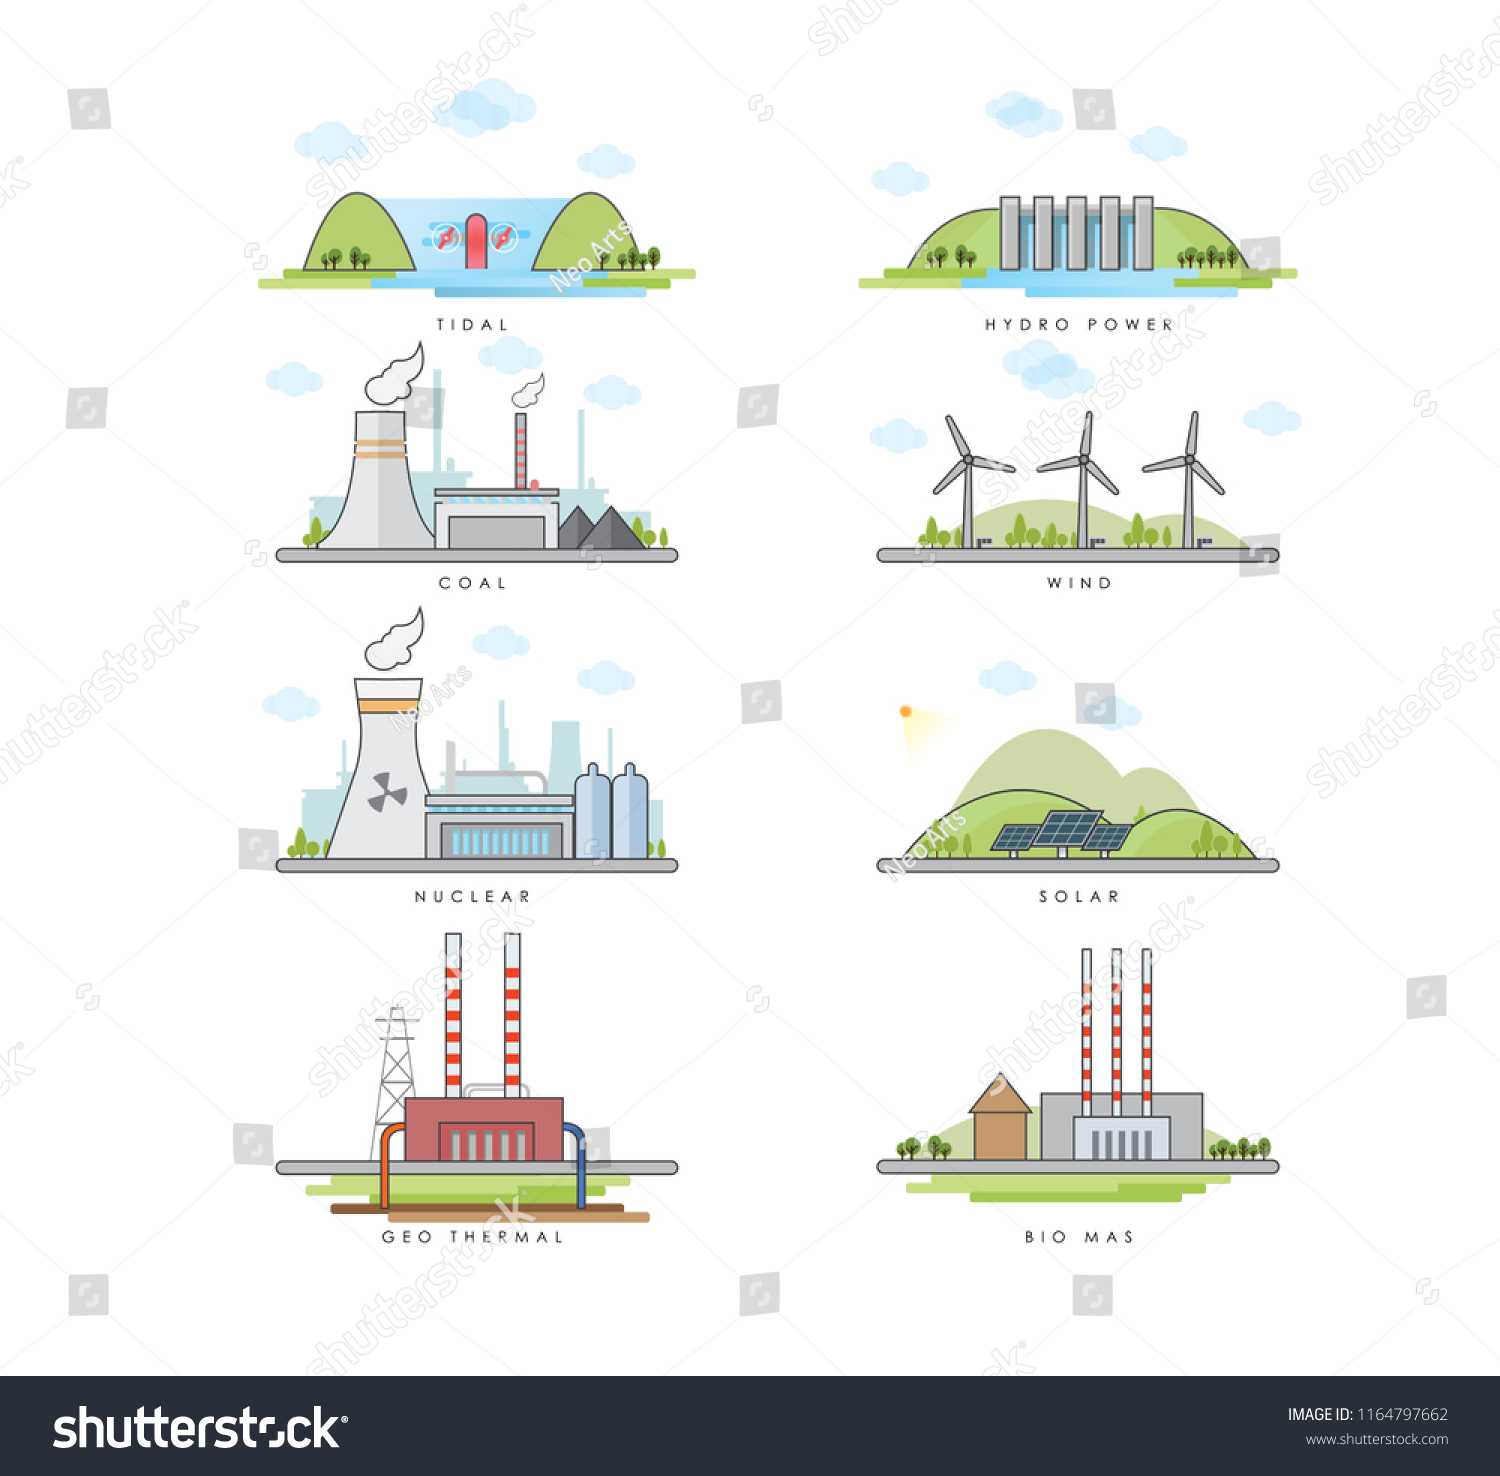 Vector Illustration Different Types Power Plants Stock Hydro Plant Layout Diagram Of Tidal Nuclear Energy